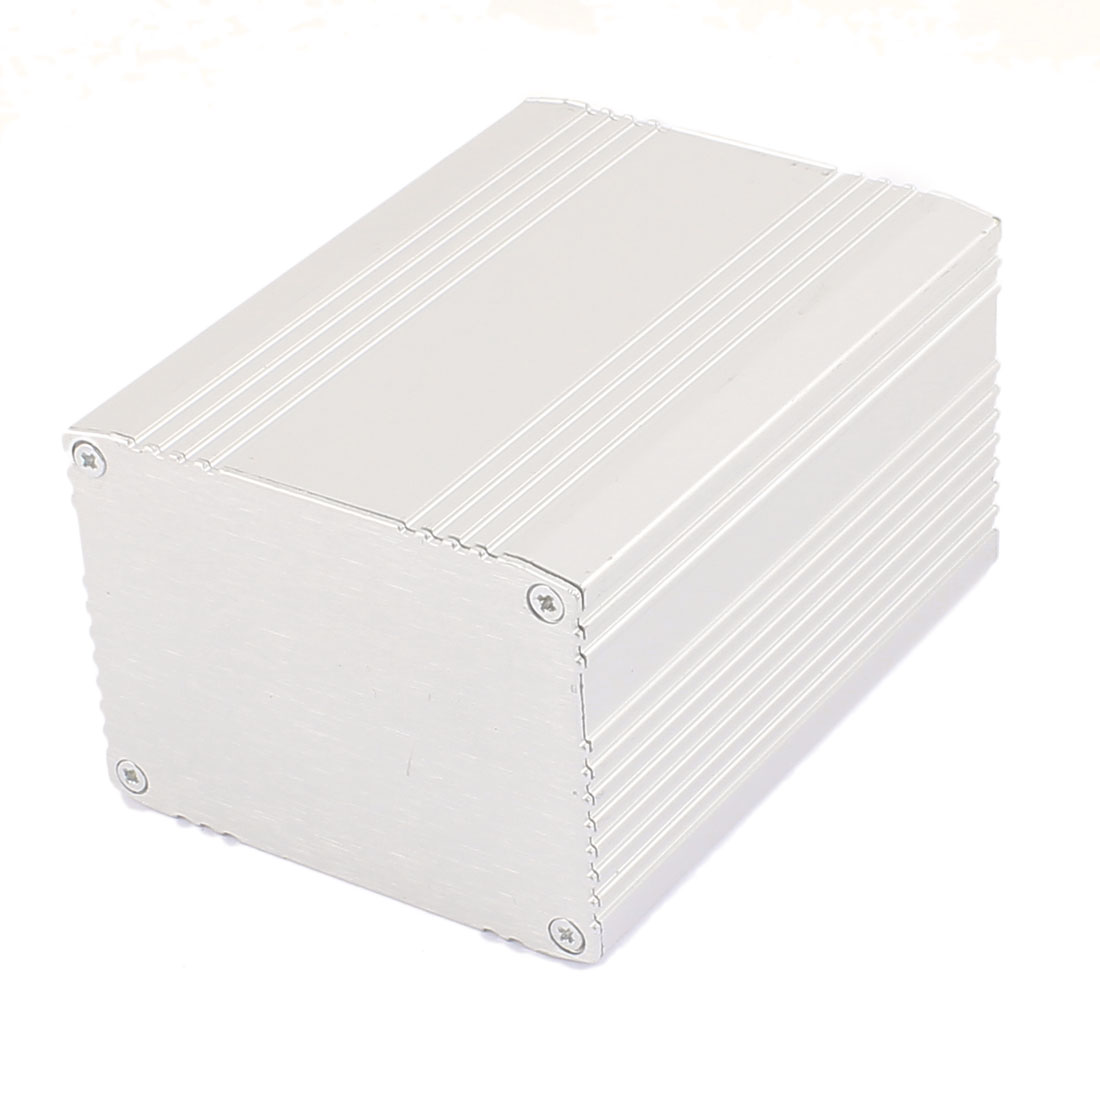 103 x 75 x 56mm Multi-purpose Electronic Extruded Aluminum Enclosure Silver Tone